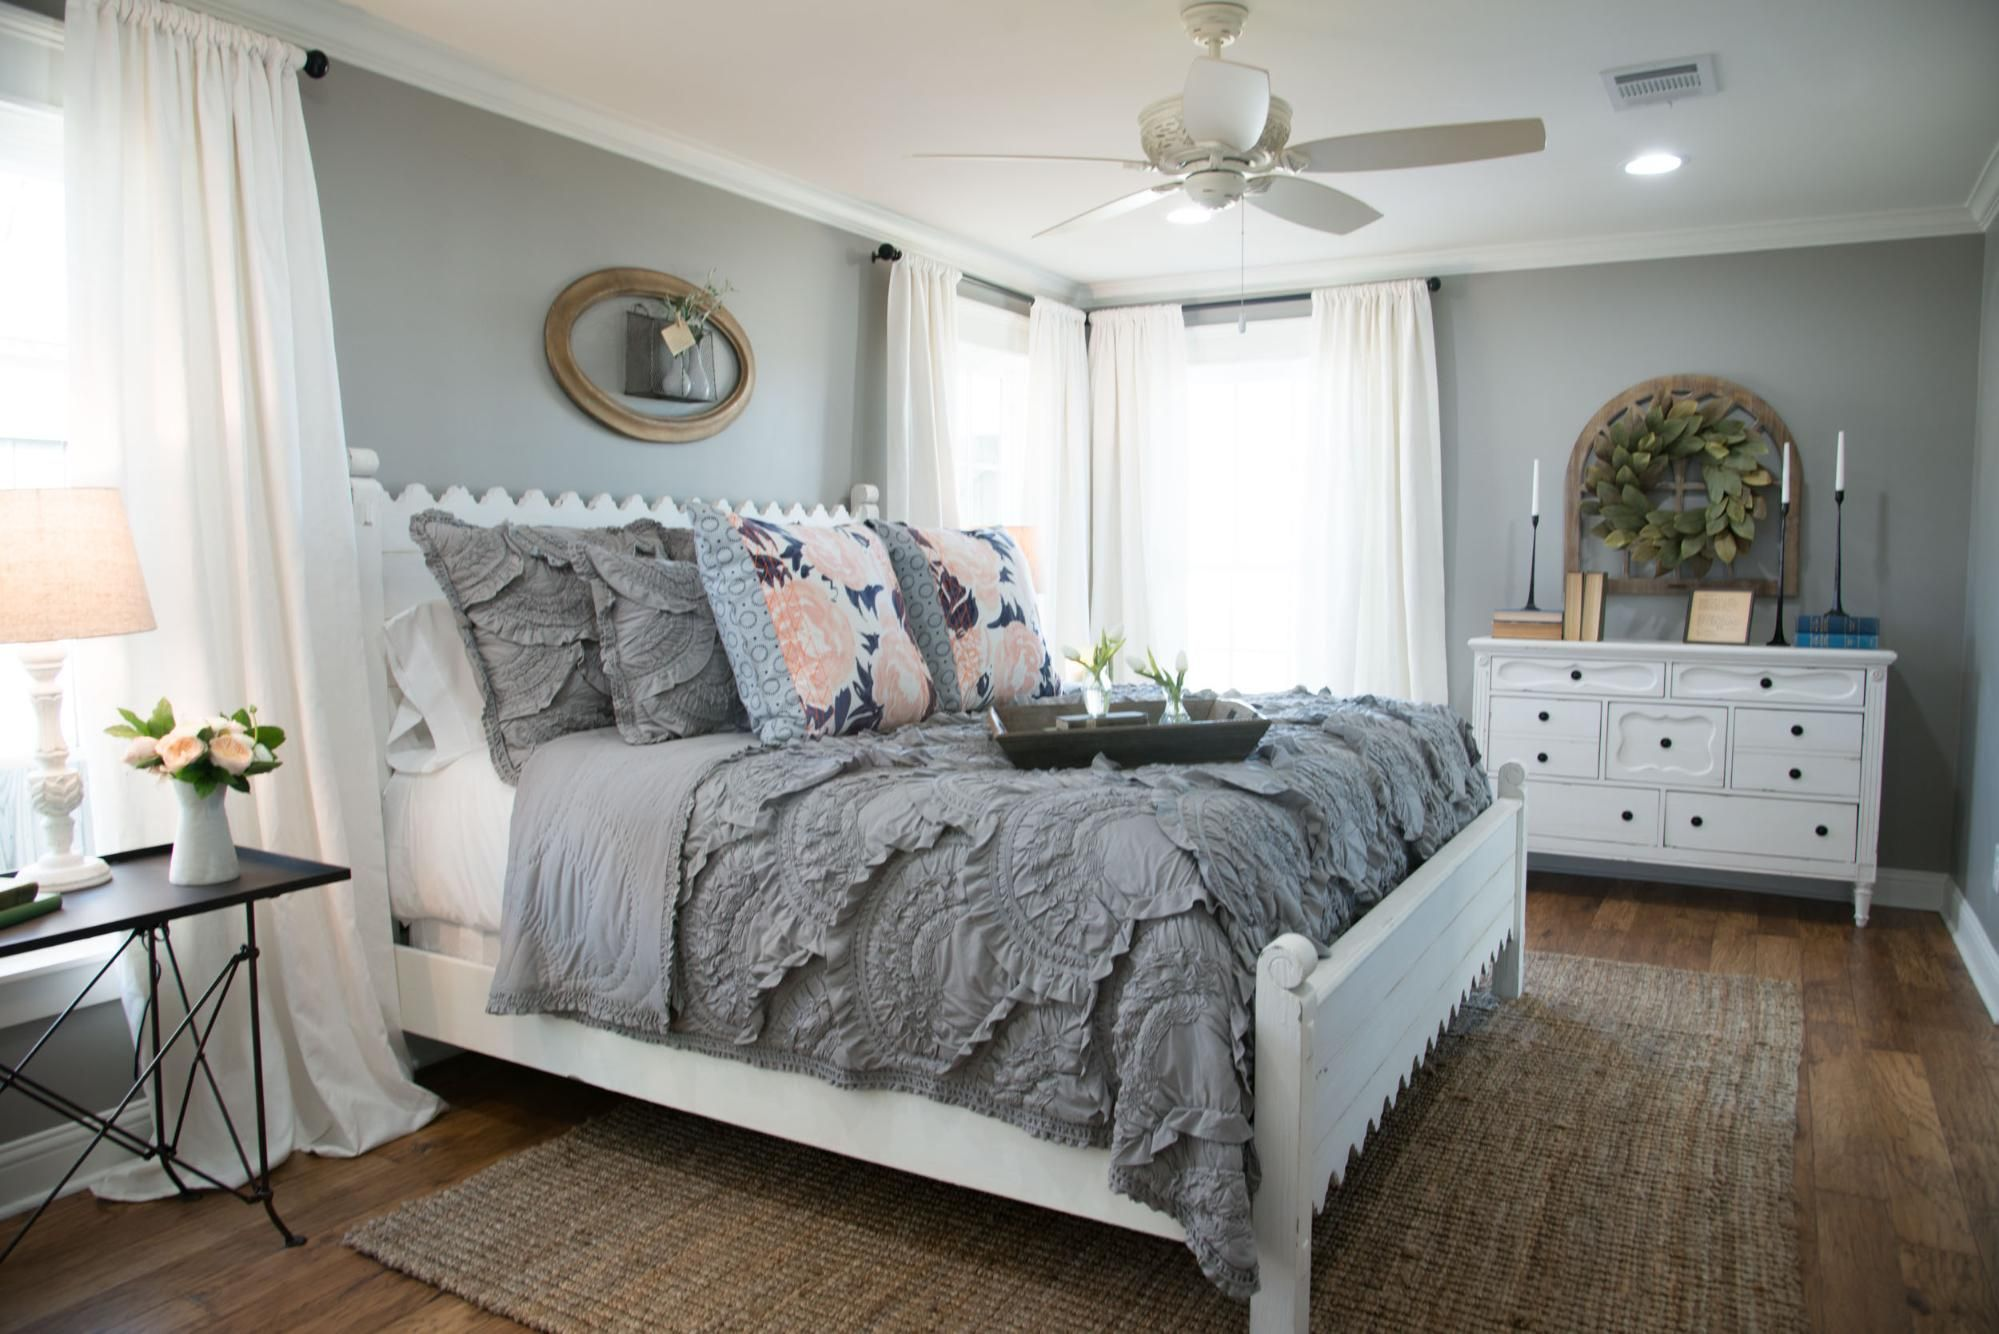 fixer upper schlafzimmer schlafzimmer wandfarbe schlafzimmer und haus. Black Bedroom Furniture Sets. Home Design Ideas